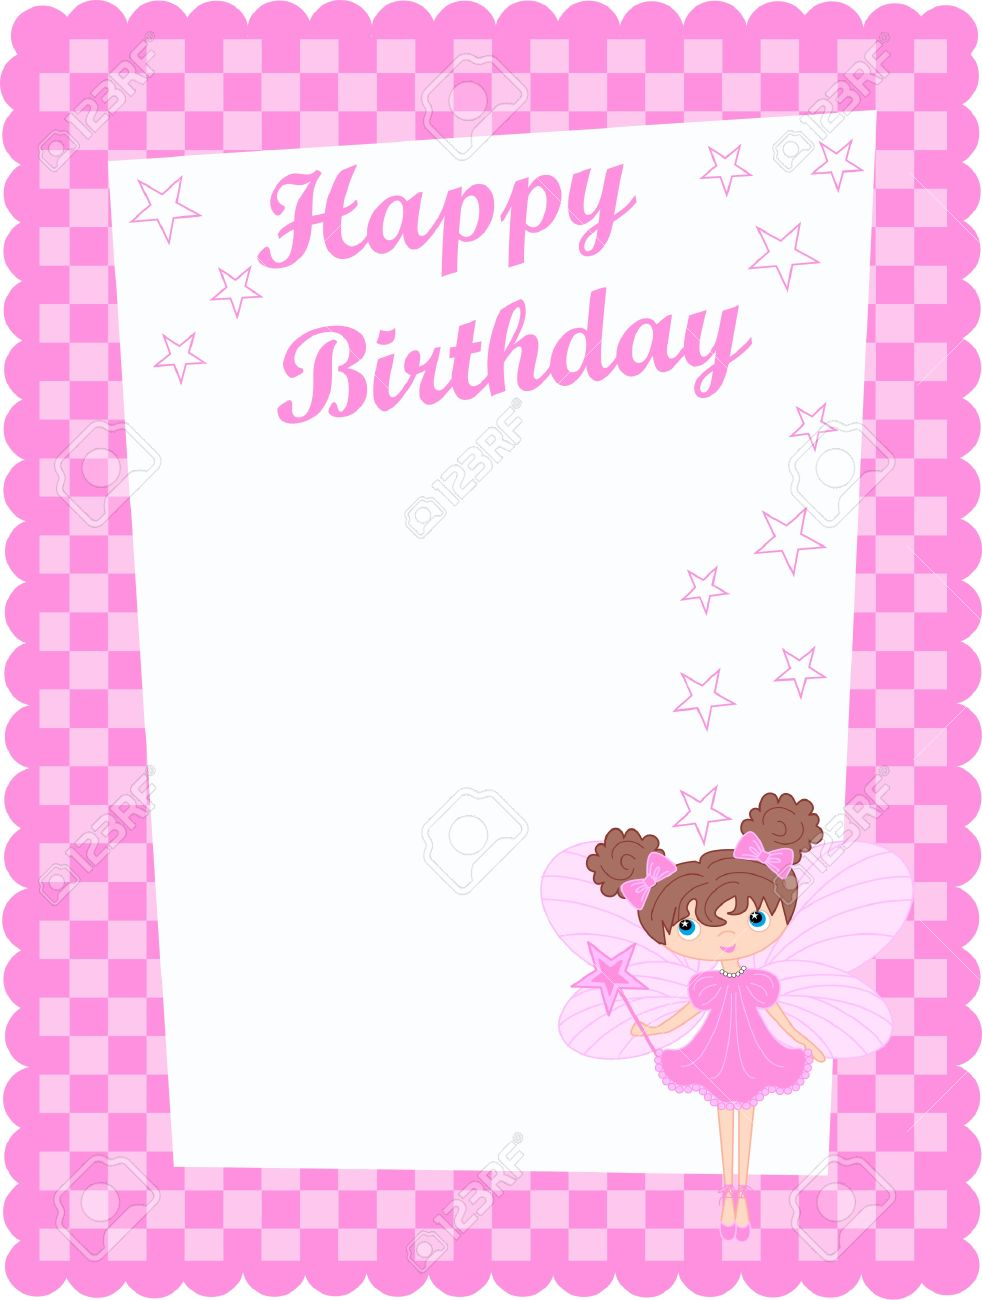 happy birthday card royalty free cliparts, vectors, and stock, Birthday card